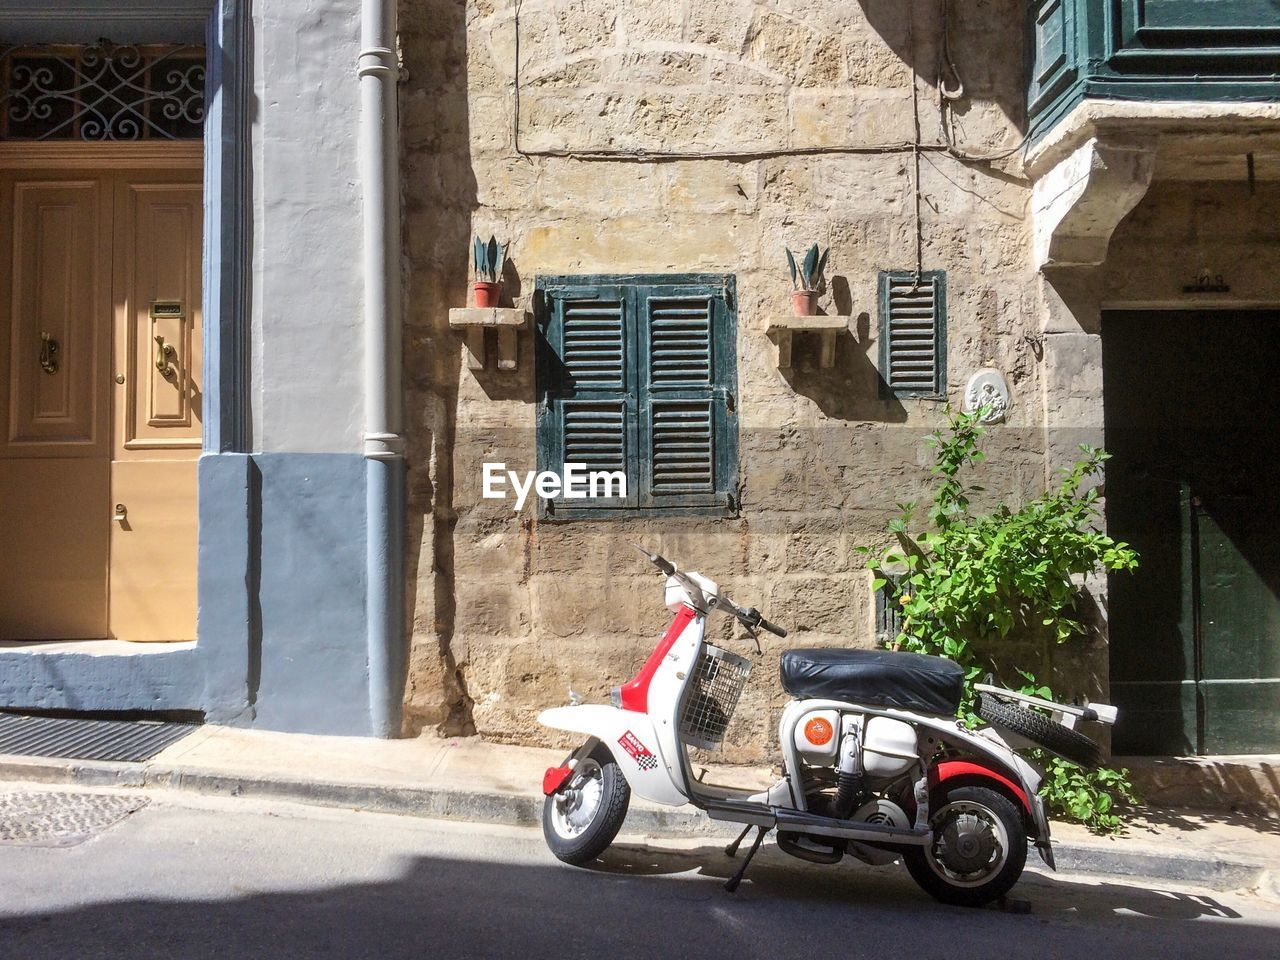 building exterior, architecture, built structure, transportation, mode of transportation, land vehicle, day, building, scooter, sunlight, city, window, street, outdoors, residential district, motor scooter, shadow, stationary, motor vehicle, car